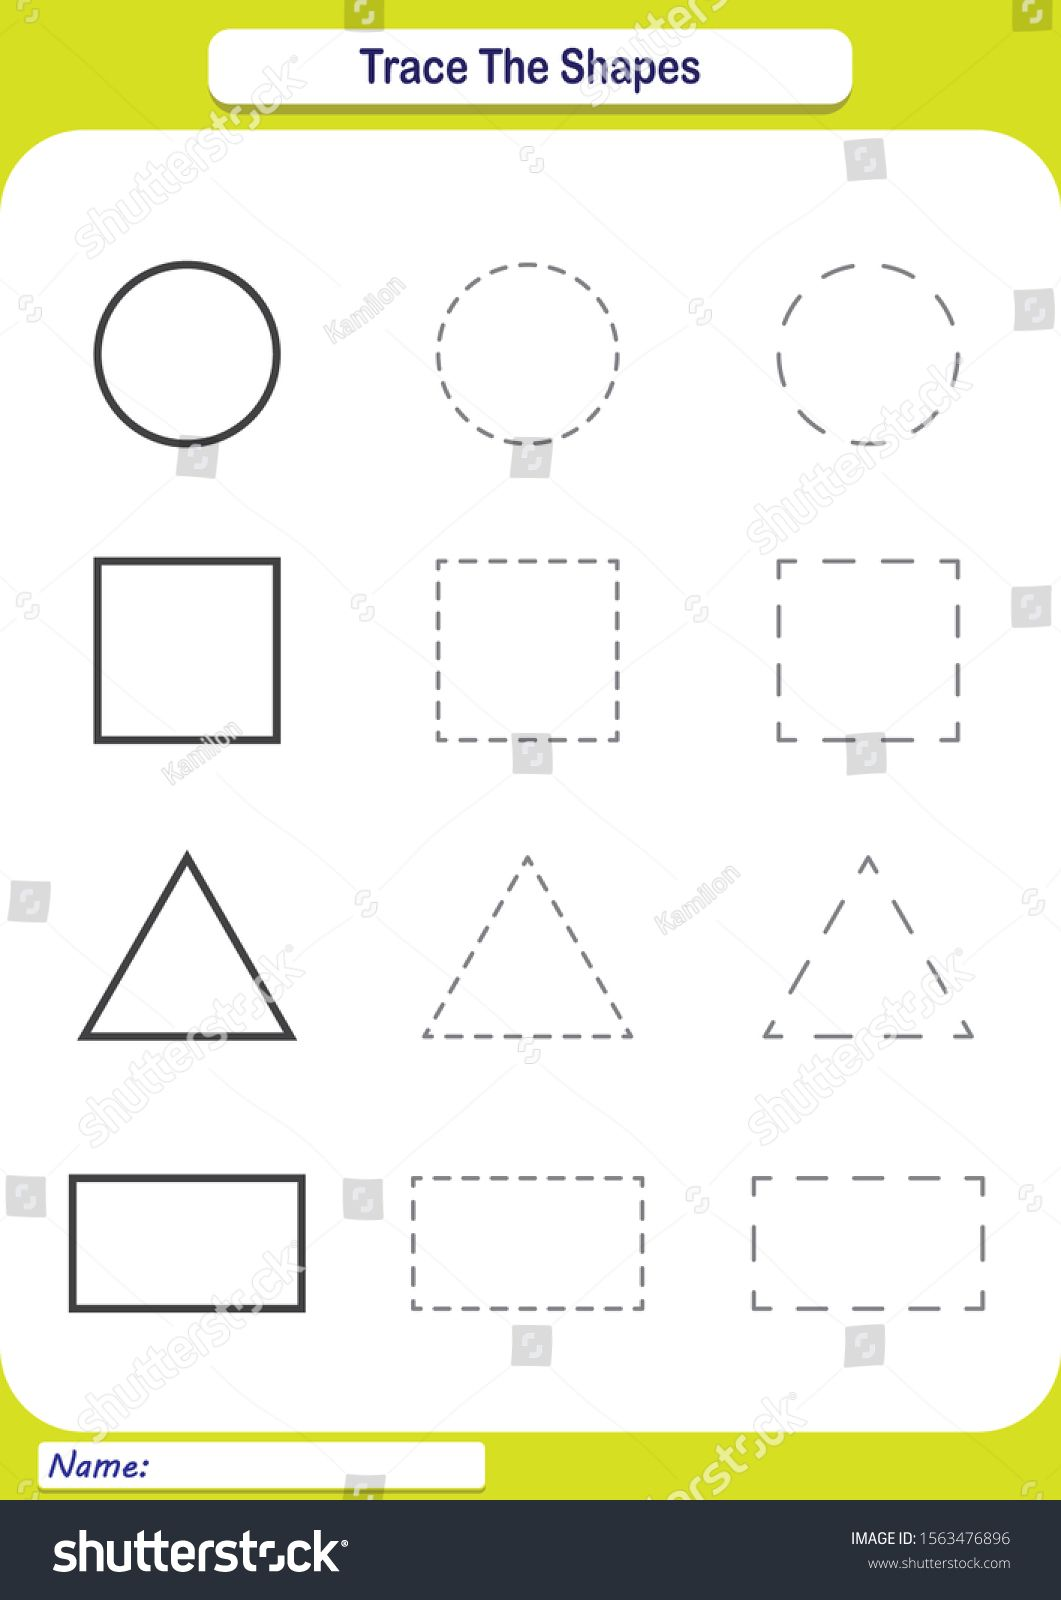 Geometric Shapes Worksheet For Kids Learn Shapes And